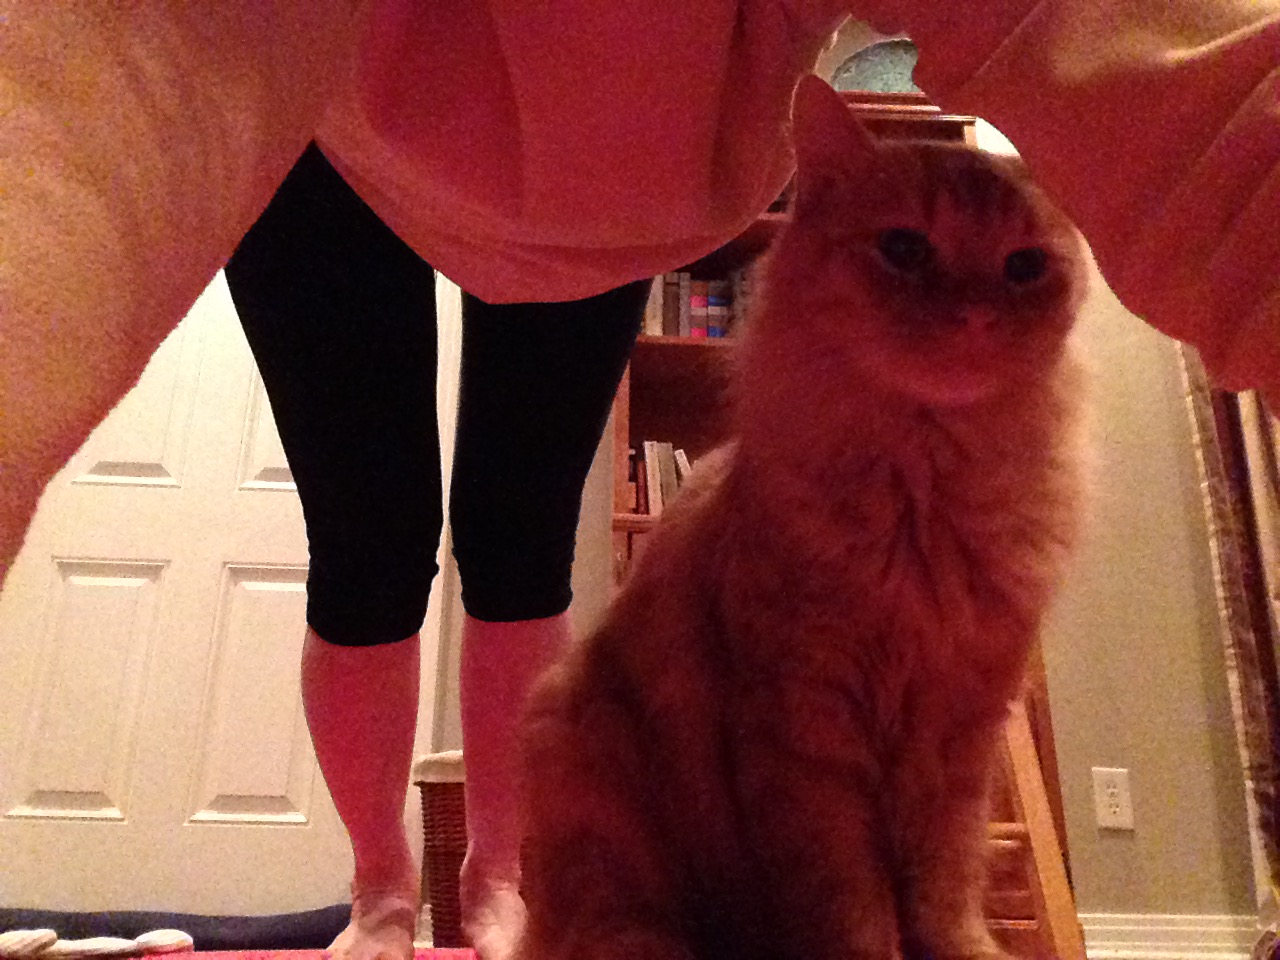 Sebastian the Cat is often a part of my home practice.